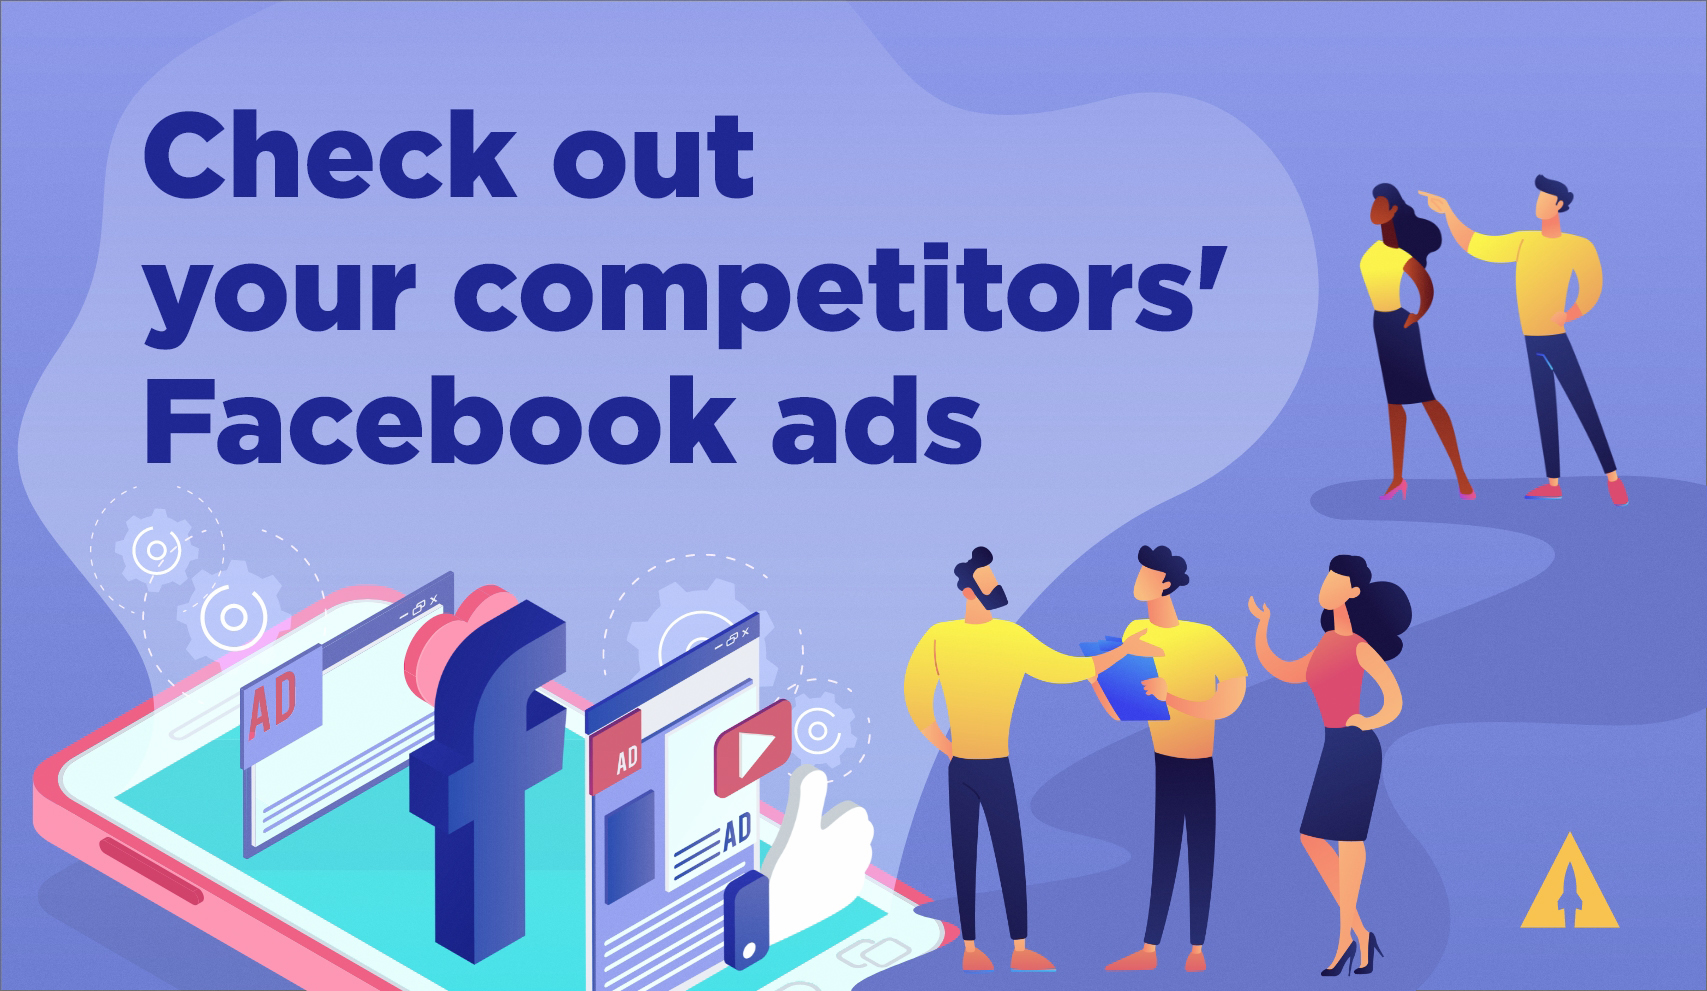 Check out your competitors' Facebook ads